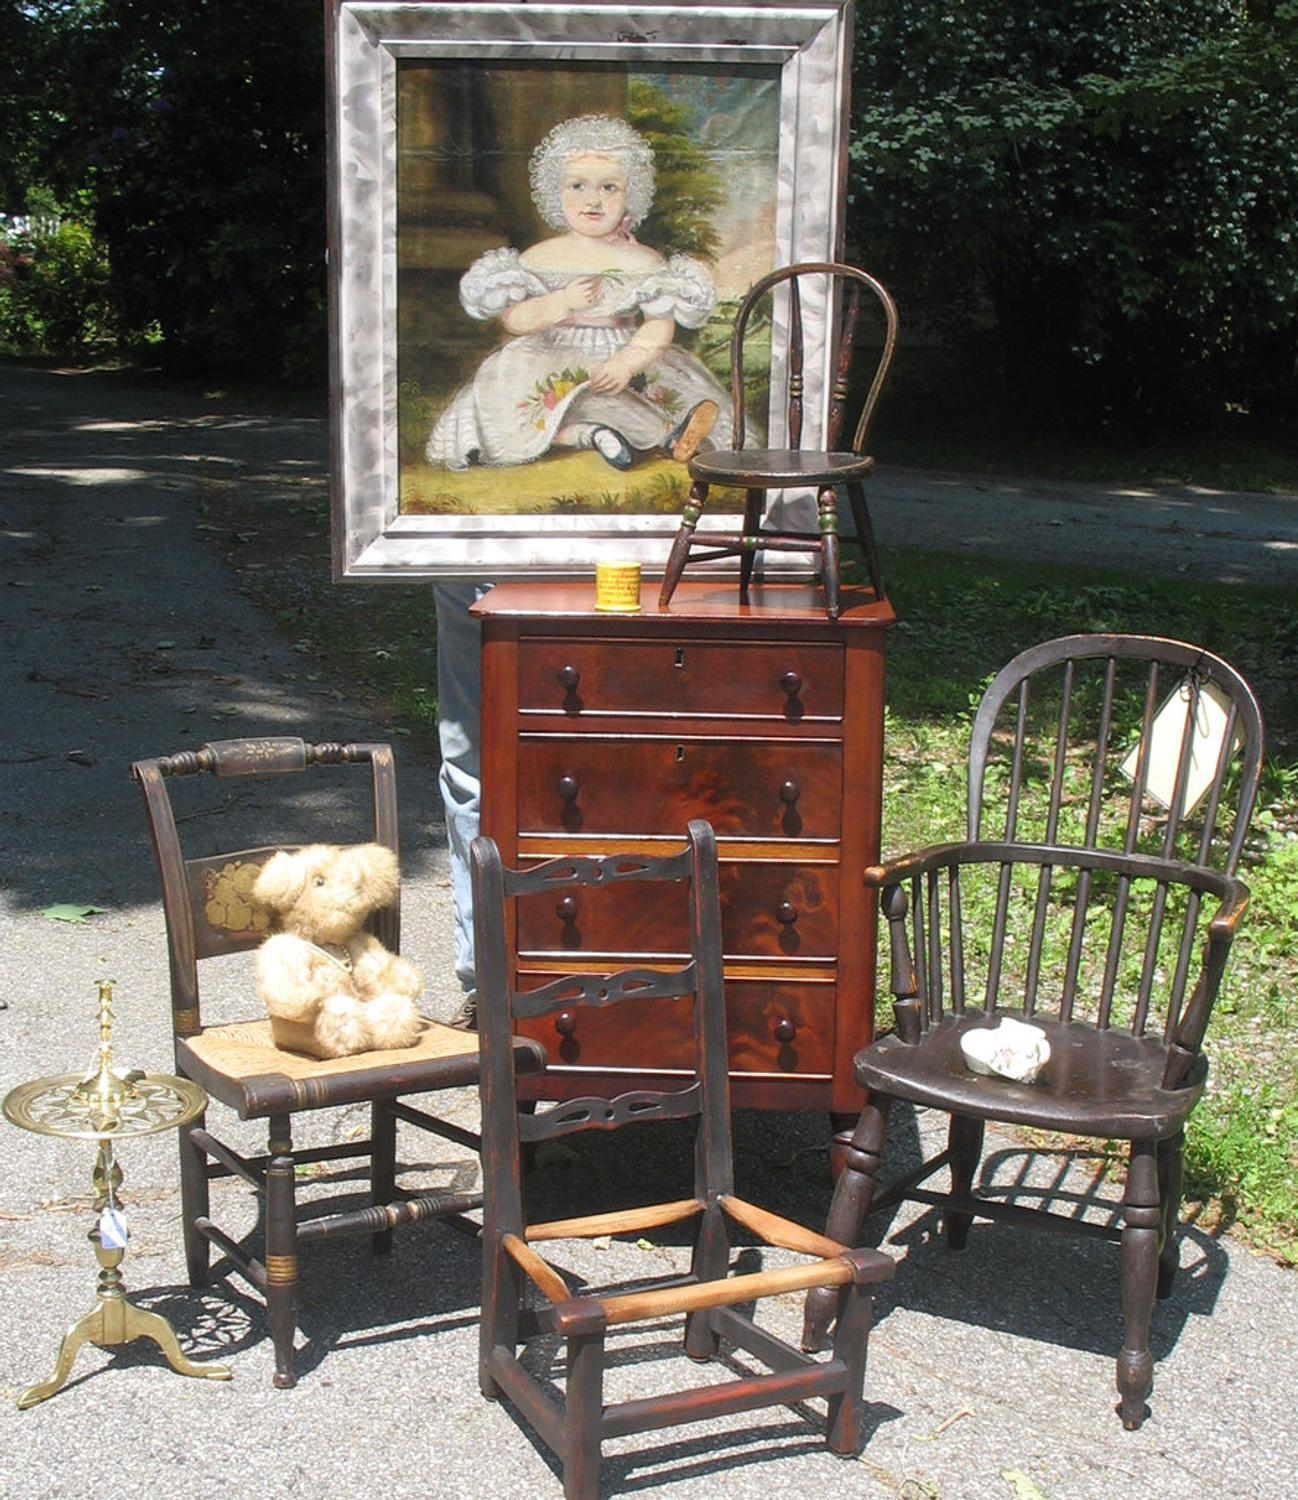 Hanes and Ruskin Antiques to Exhibit - Antique Childrens Chair Antique  Furniture - Antique Childrens Chairs - Childrens Antique Chairs Antique Furniture